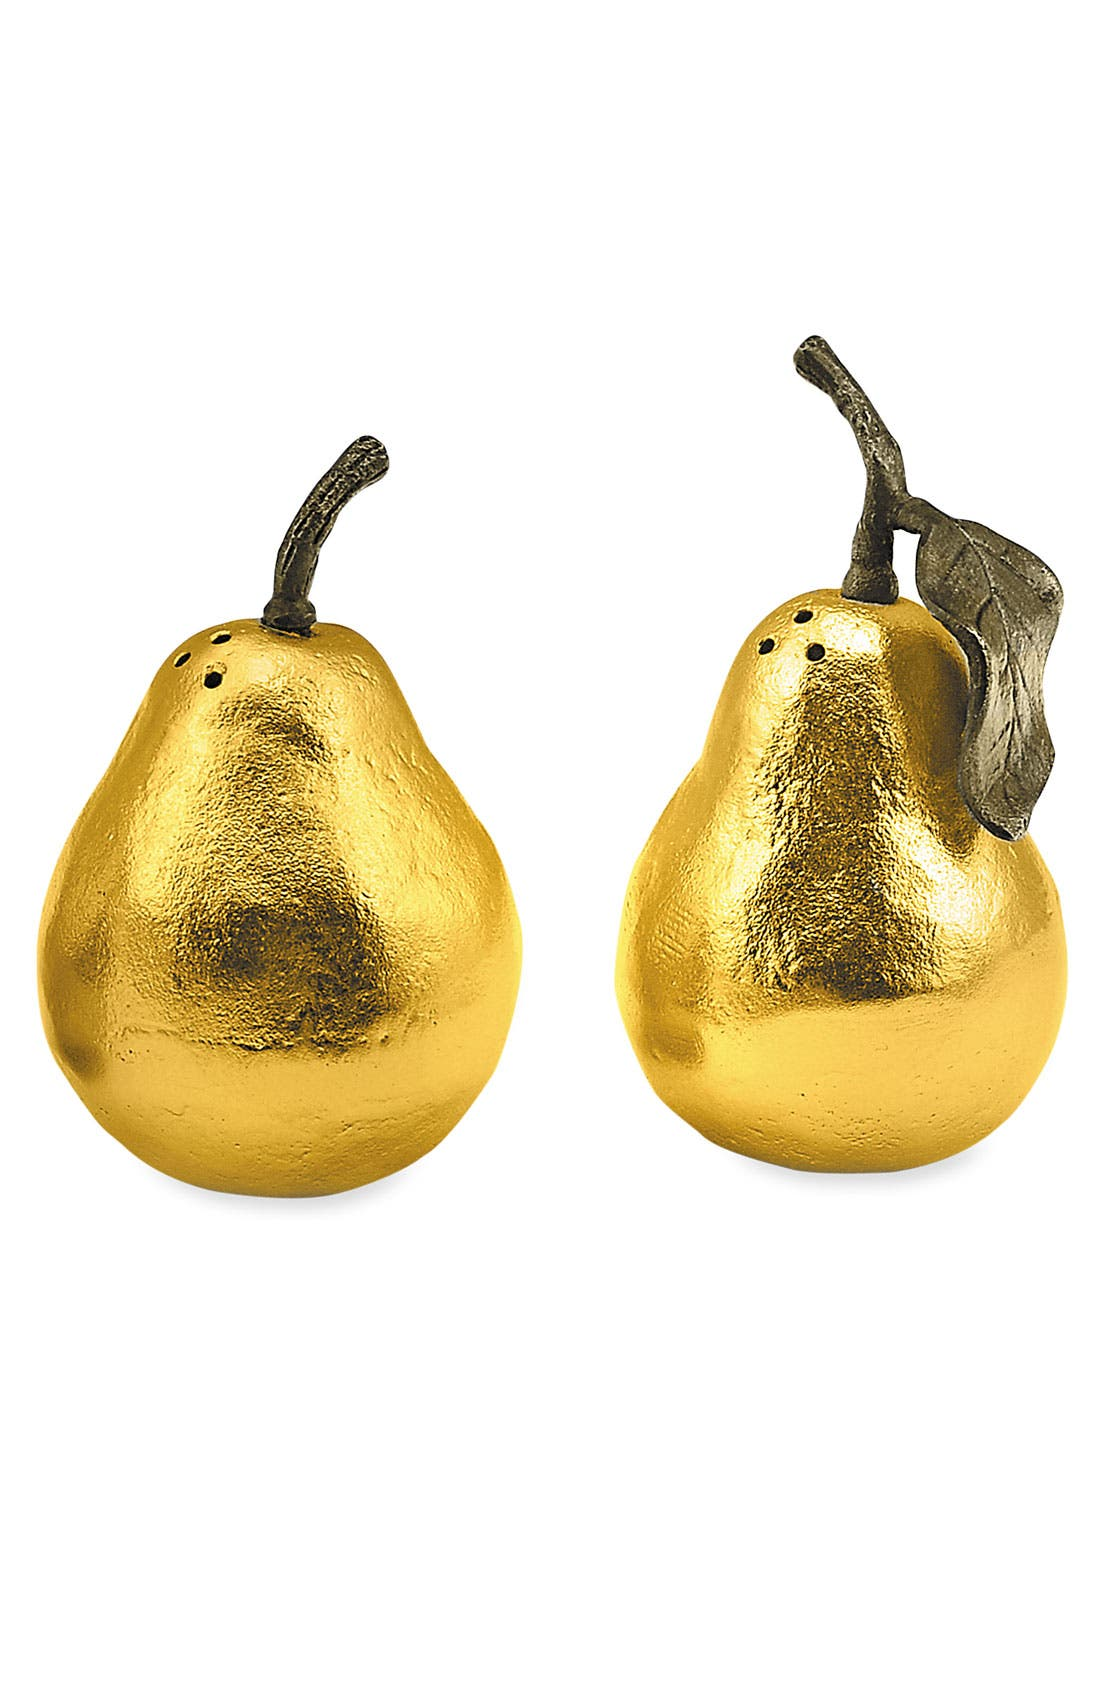 Main Image - Michael Aram 'Pear' Salt & Pepper Shakers